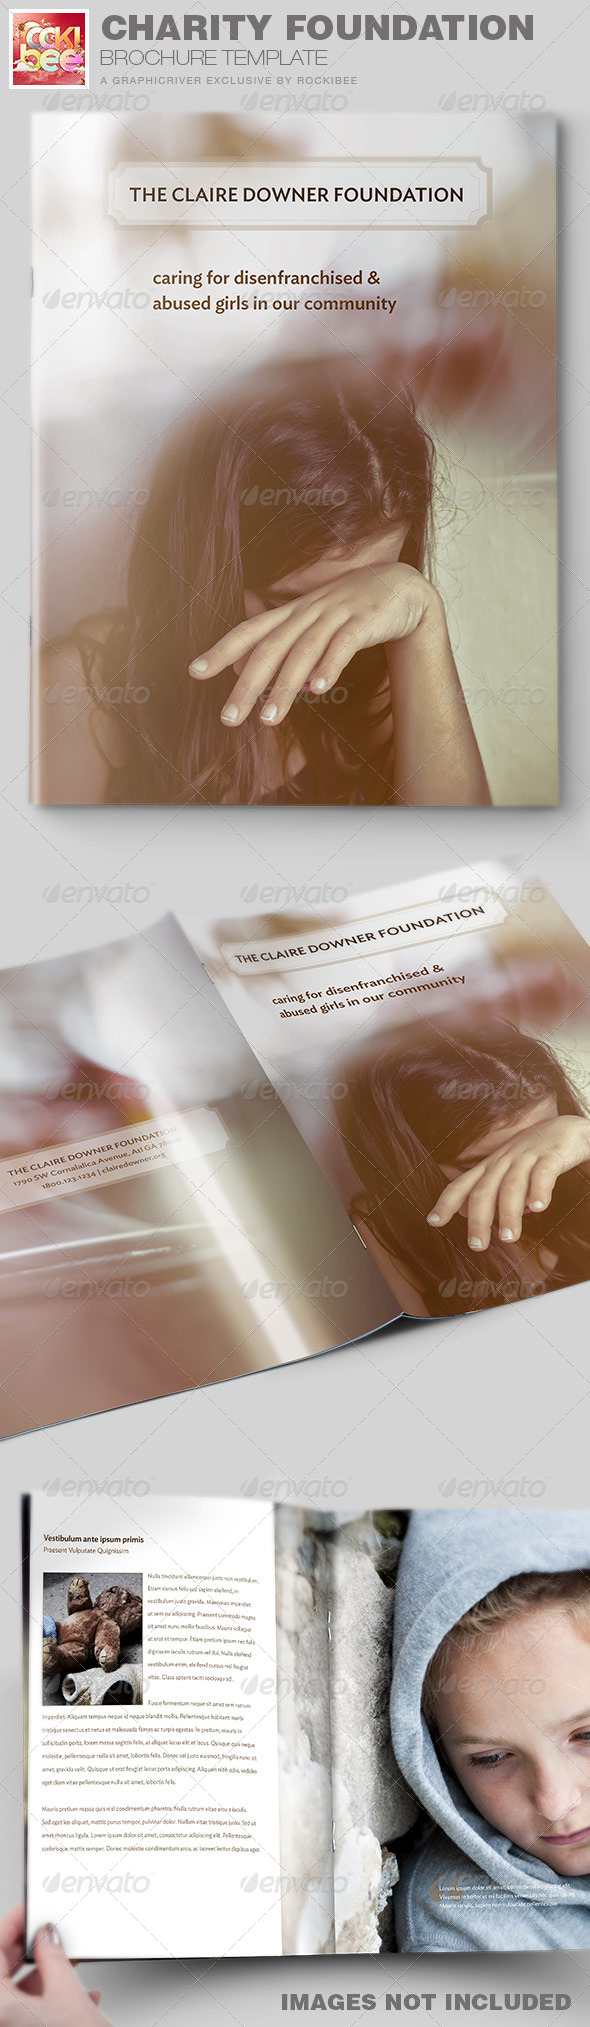 GraphicRiver Charity Foundation Brochure Template 7169079